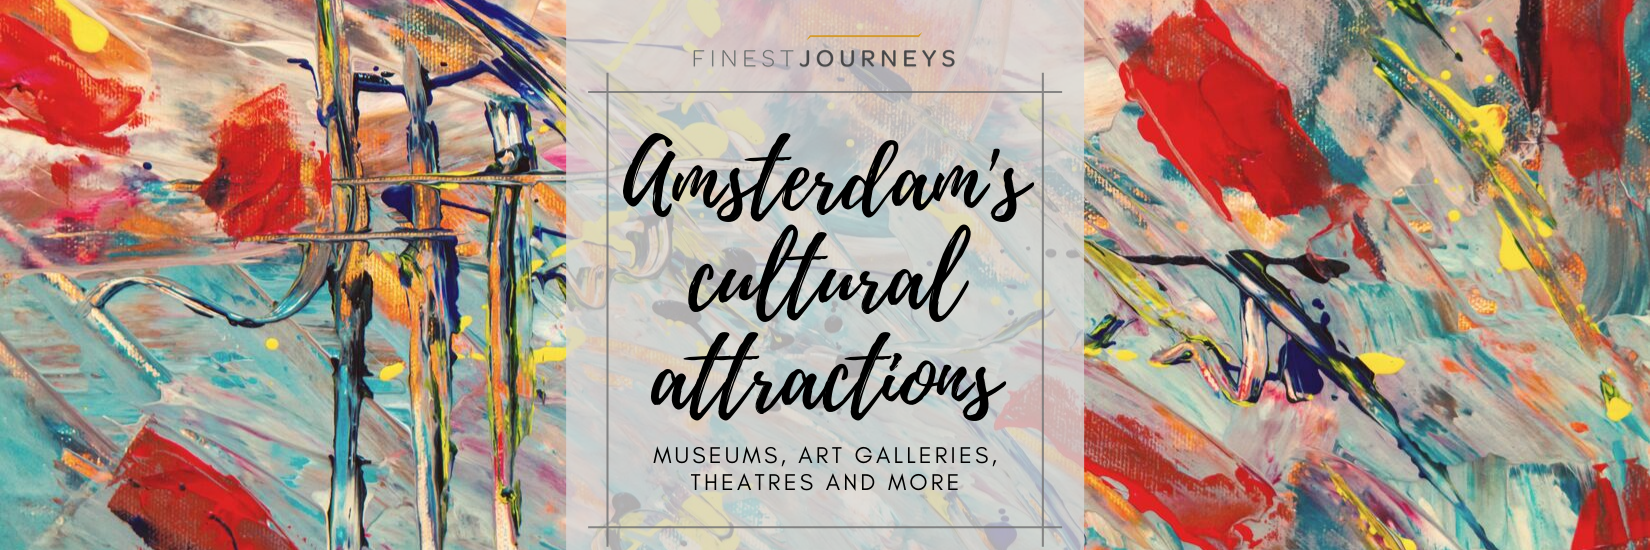 IMG : Amazing cultural attractions in Amsterdam – museums, art galleries, theatres and more